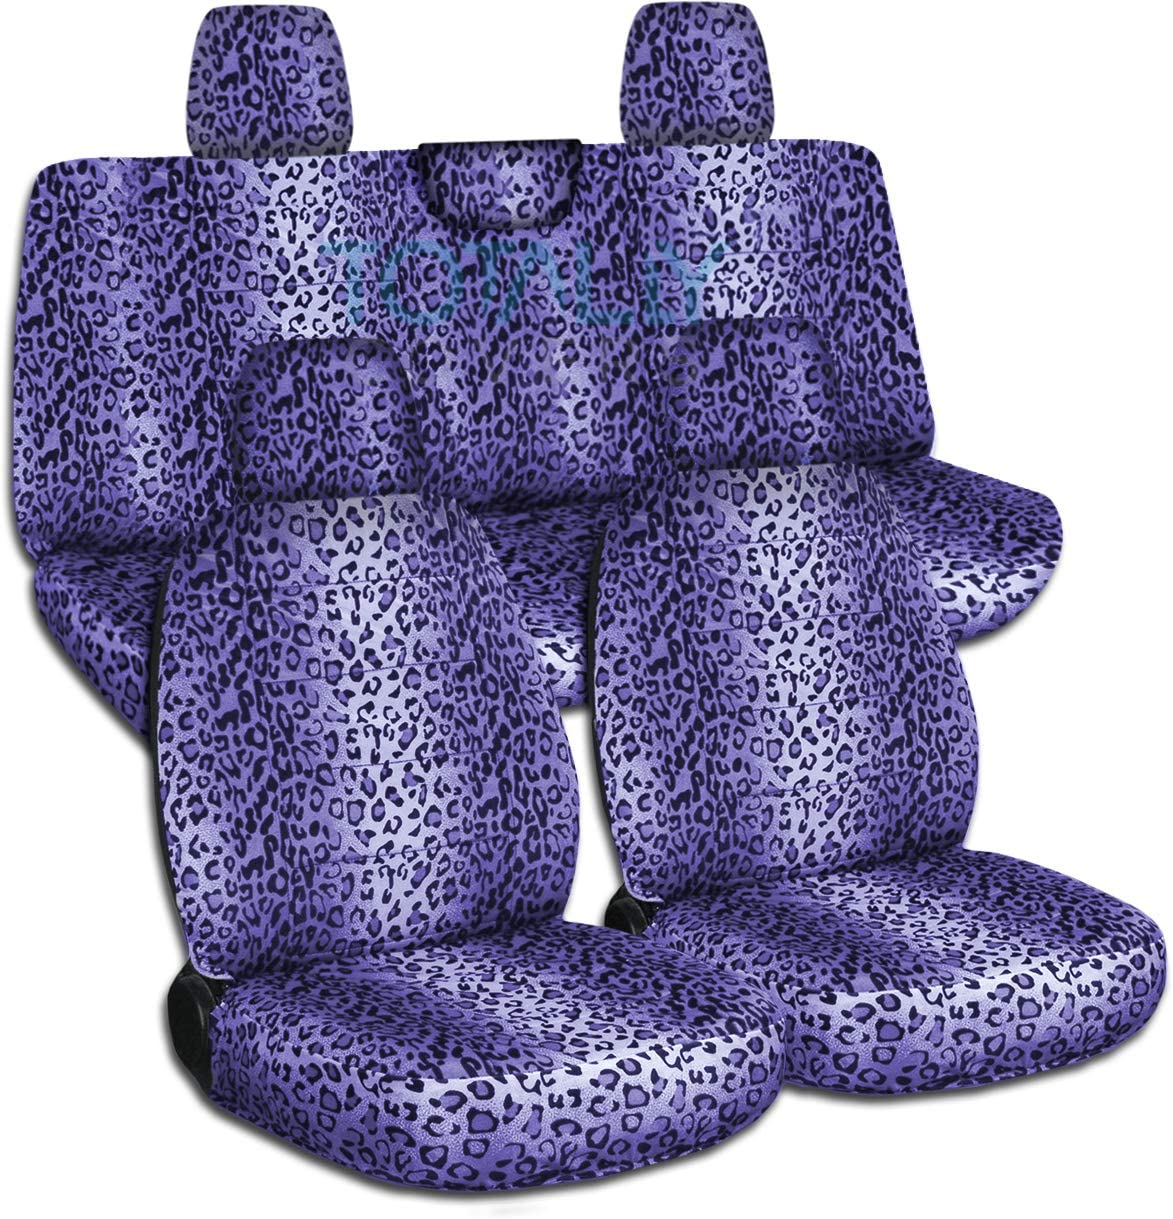 Totally Covers Compatible with 2018-2020 Jeep Wrangler JL Animal Print Seat Covers: Purple Leopard - Full Set: Front & Rear (29 Prints) 2-Door/4-Door Solid/Split Bench Back w/wo Armrest/Headrest